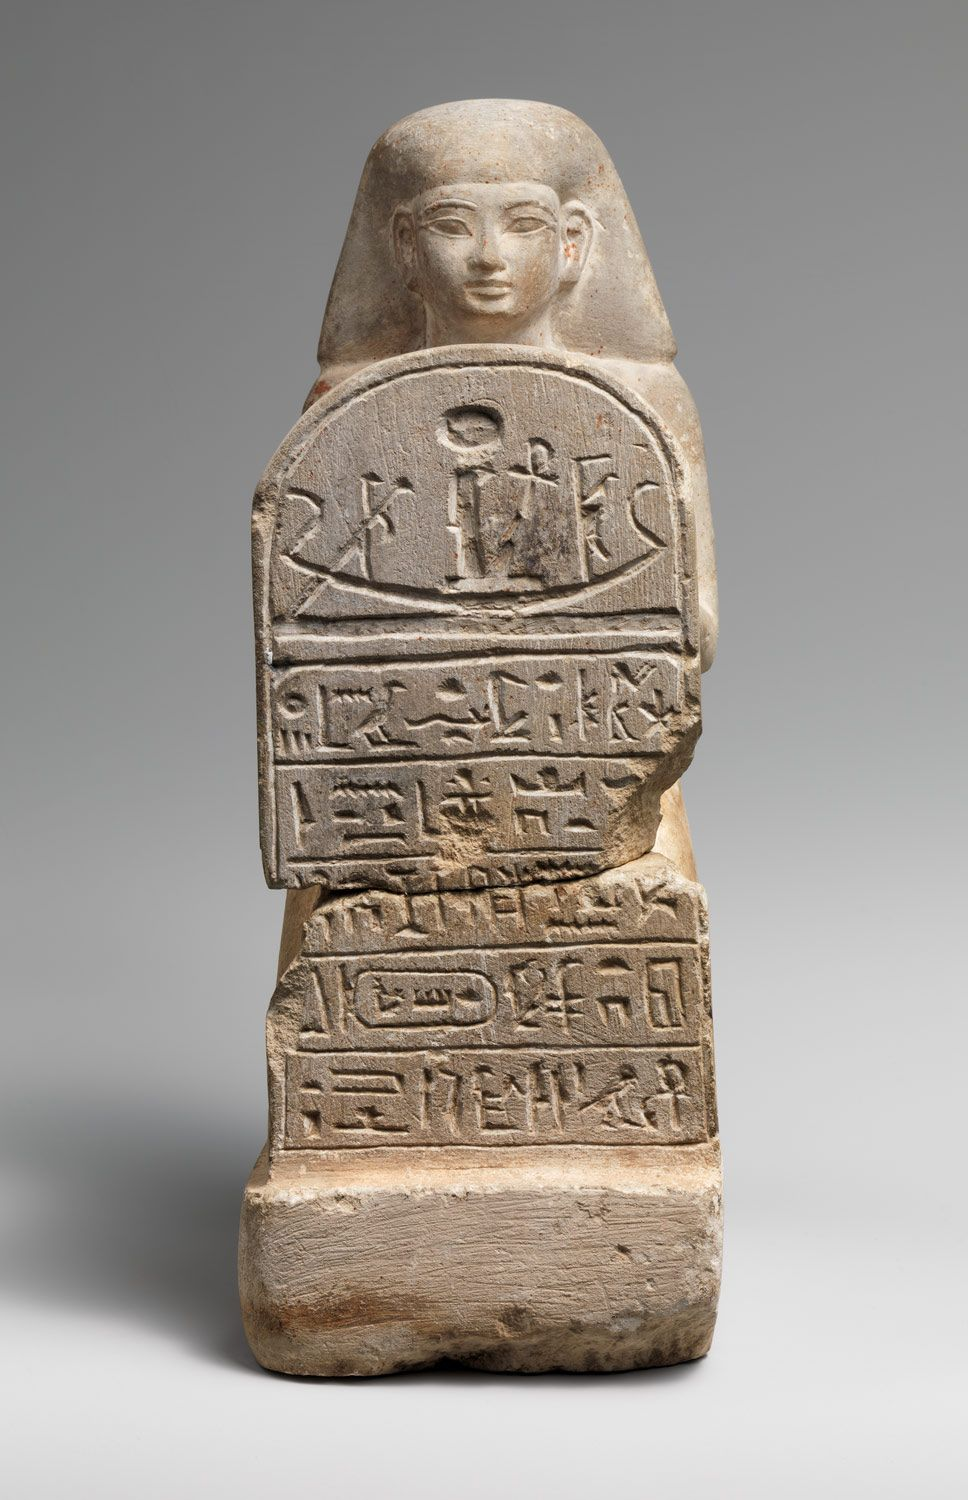 Stelophorous Statue of Bay  Period: New Kingdom Dynasty: Dynasty 19 Reign: reign of Seti I or later Date: ca. 1294–1250 B.C. Geography: From Egypt Medium: Limestone Dimensions: Overall: H. 28.1 cm (7 1/2 in); w. 15 cm (4 in); d. 15 cm (5 7/8 in) upper half: h. 17.8 cm (7 in)